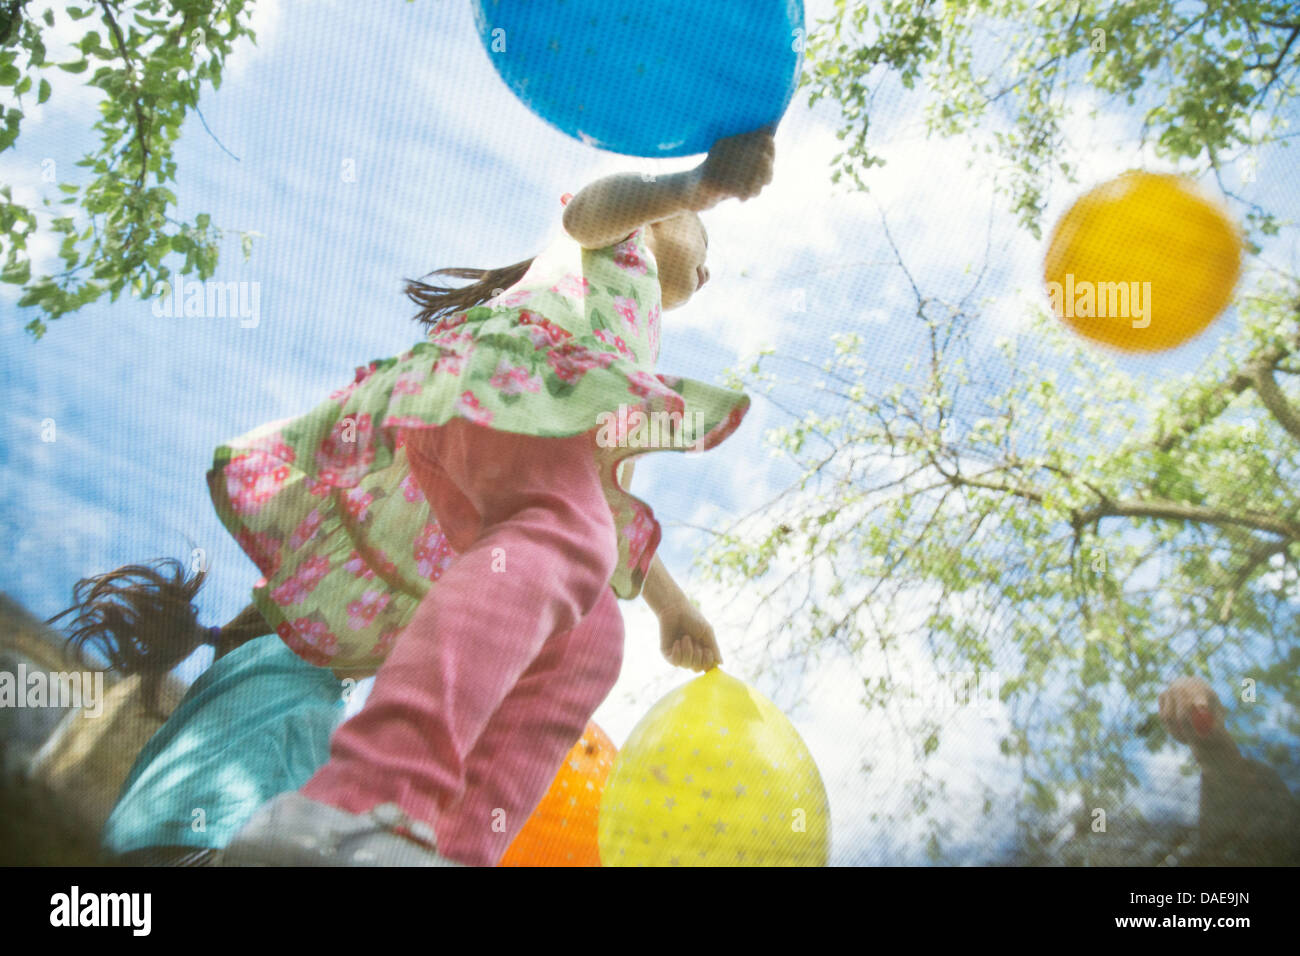 Young girls bouncing on garden trampoline with balloons - Stock Image